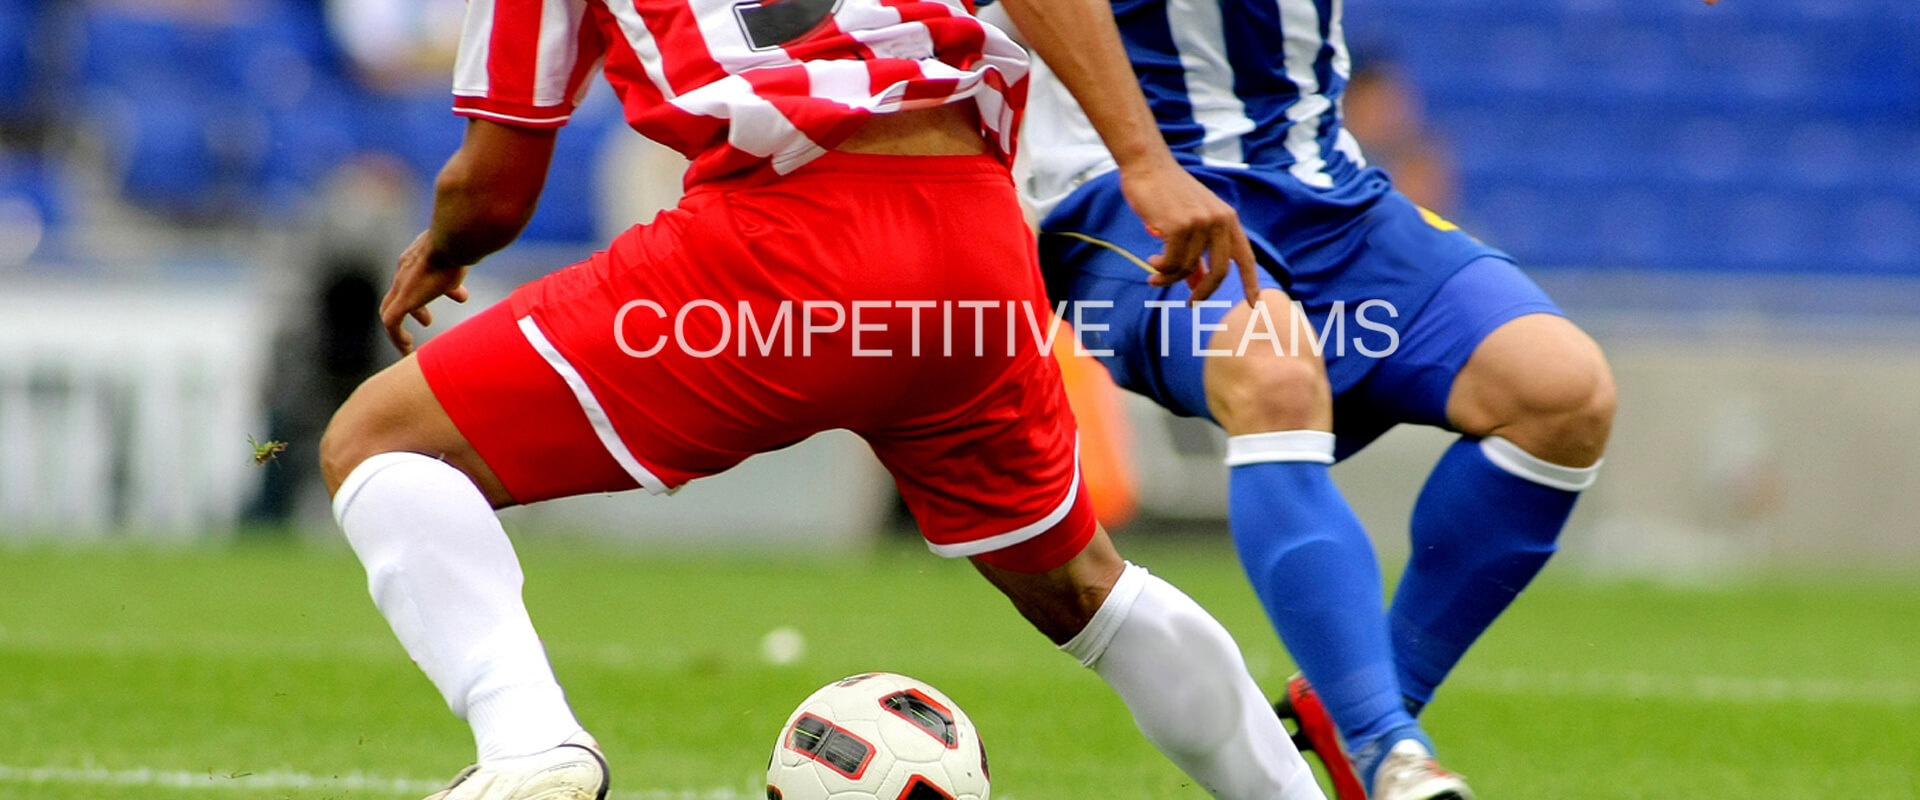 COMPETITIVE TEAMS